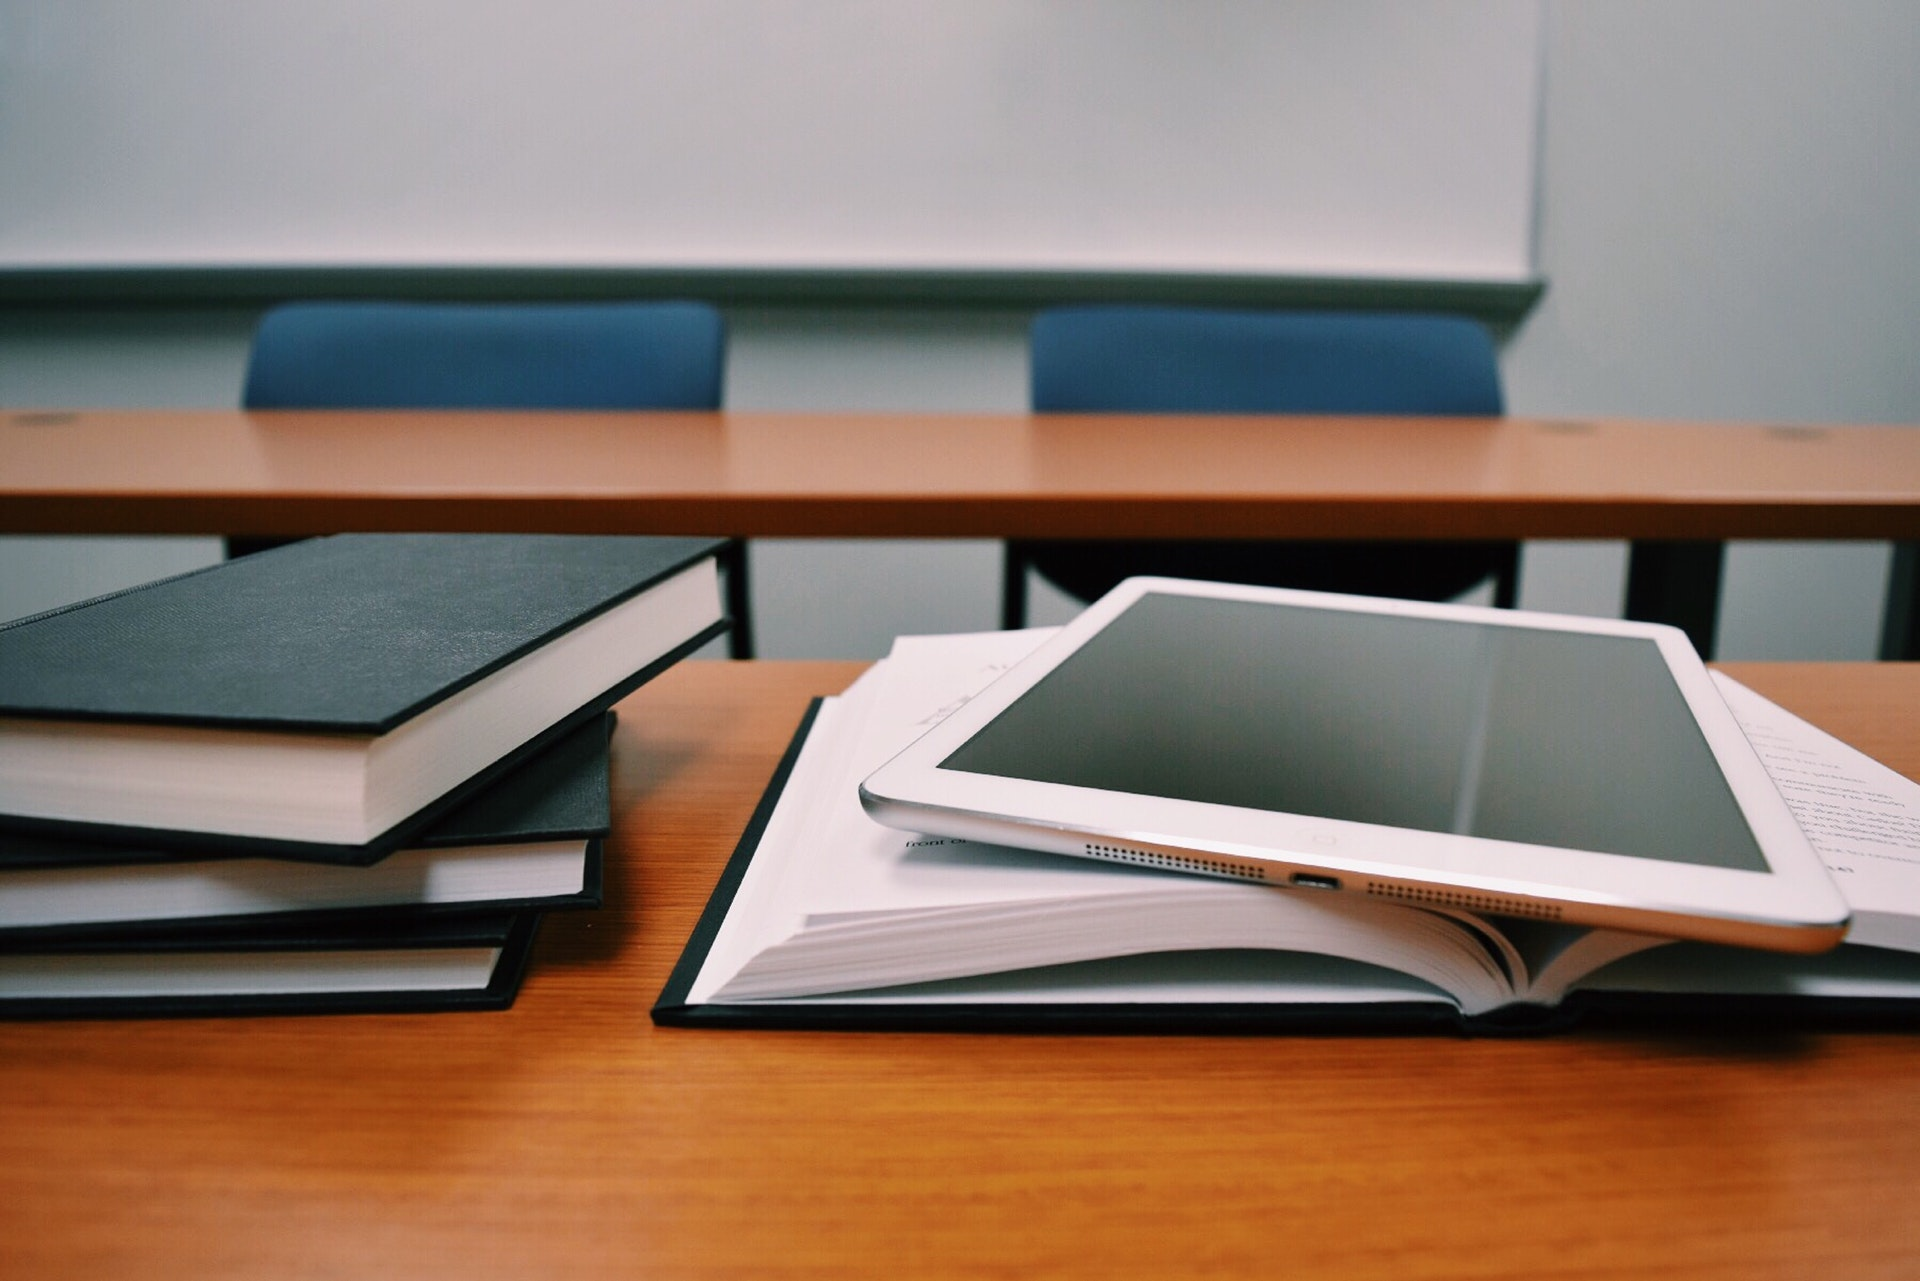 Real estate textbooks and ipad on desk inside of classroom